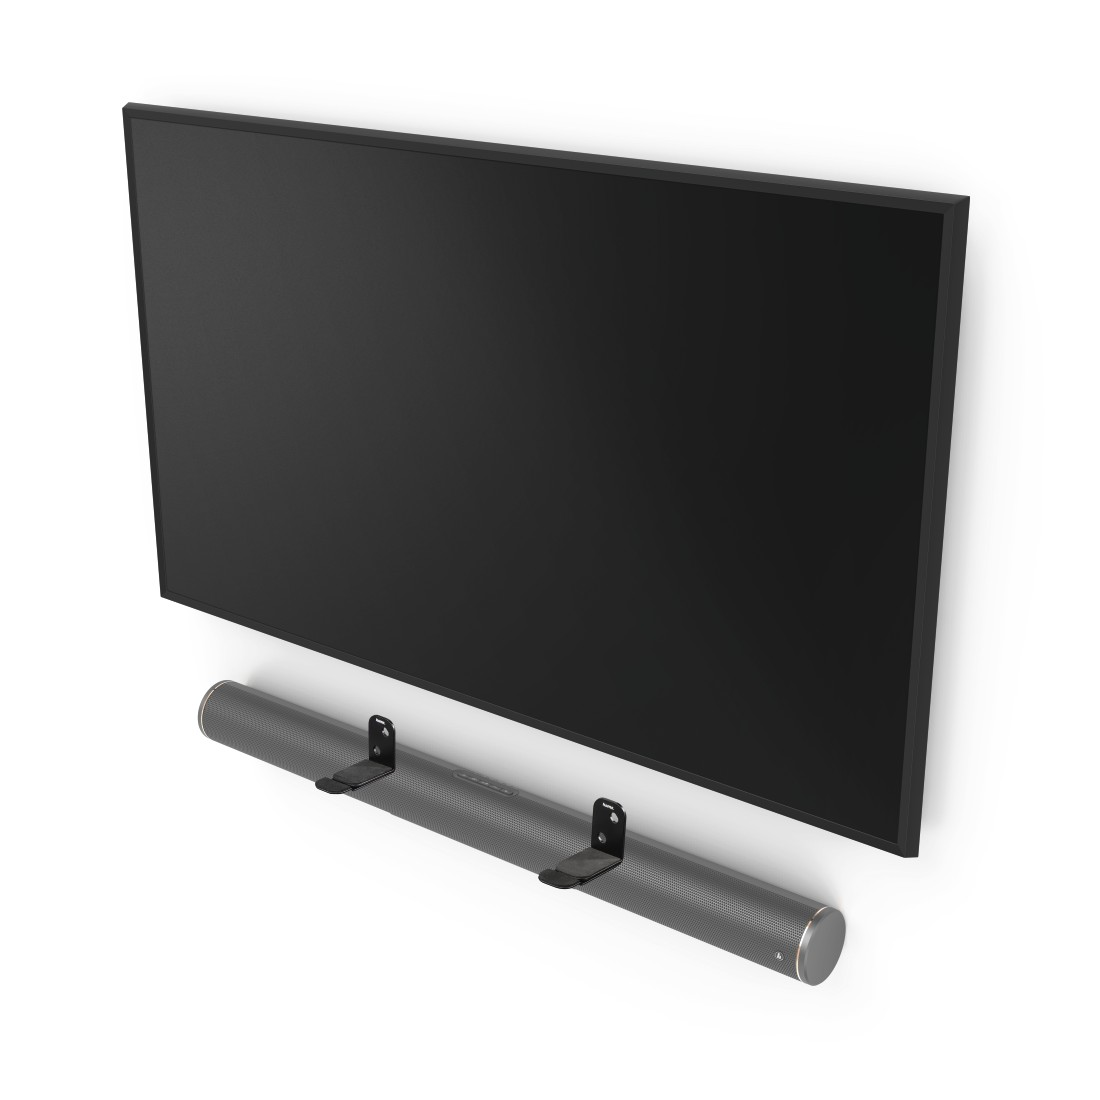 awx6 Druckfähige Anwendung 6 - Hama, Smart-TV-Soundbar 2.1 SIRIUM4000ABT, Wireless Subwoofer/Alexa/Bluetooth